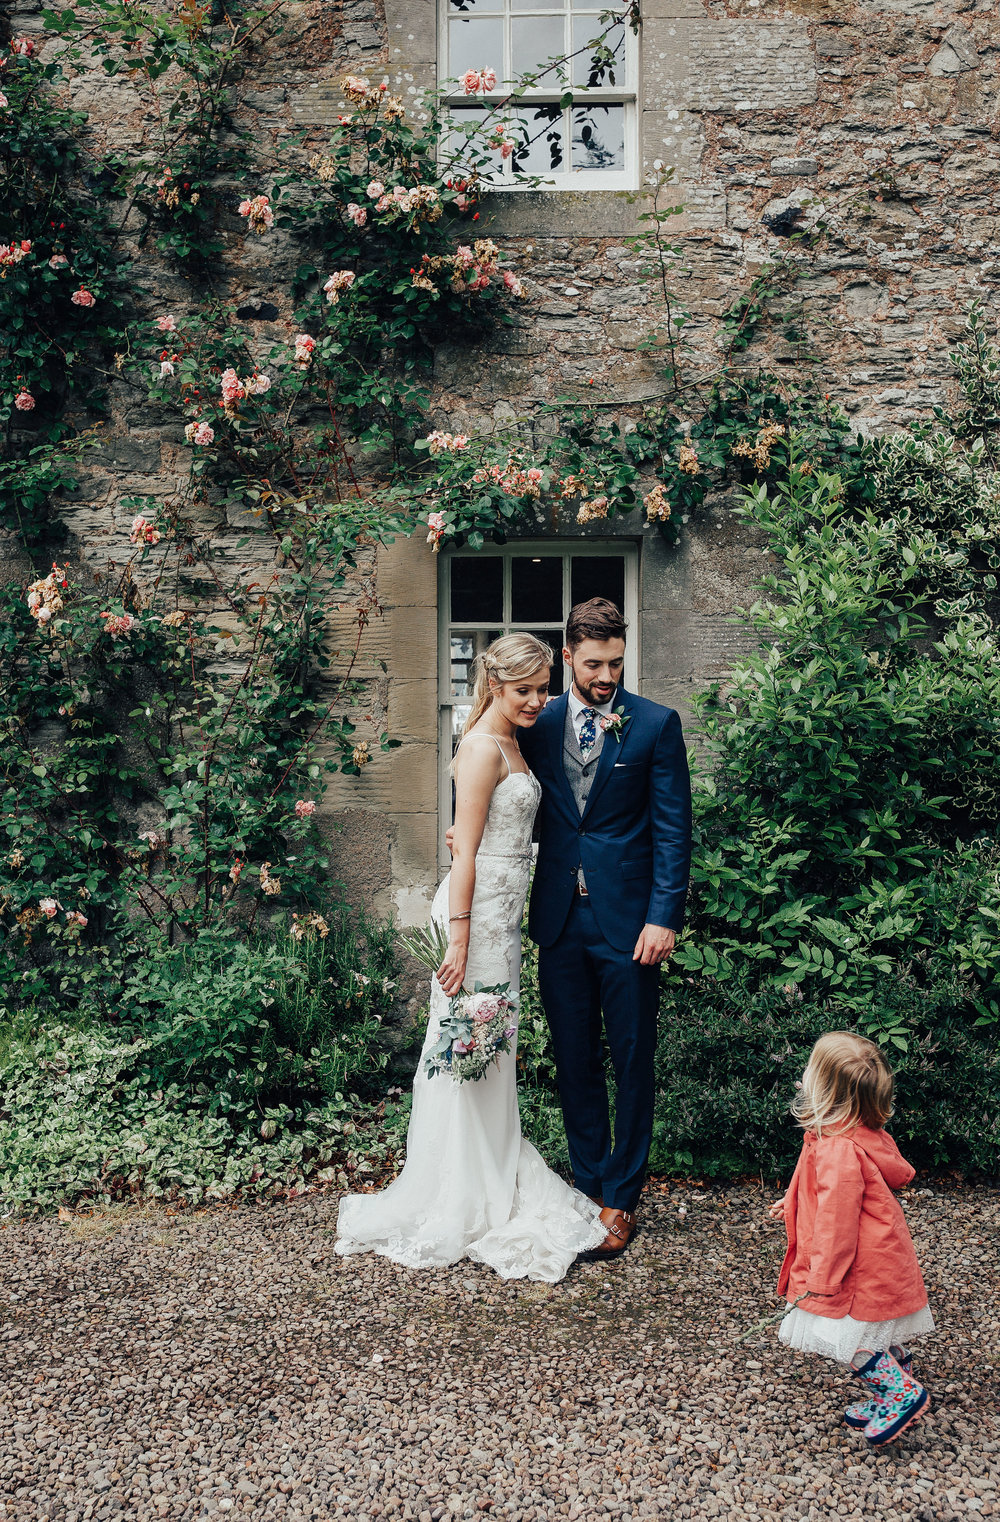 PJ_PHILLIPS_PHOTOGRAPHY_EDINBURGH_WEDDERBURN_BARNS_WEDDING_EDINBURGH_WEDDING_PHOTOGRAPHER_98.jpg